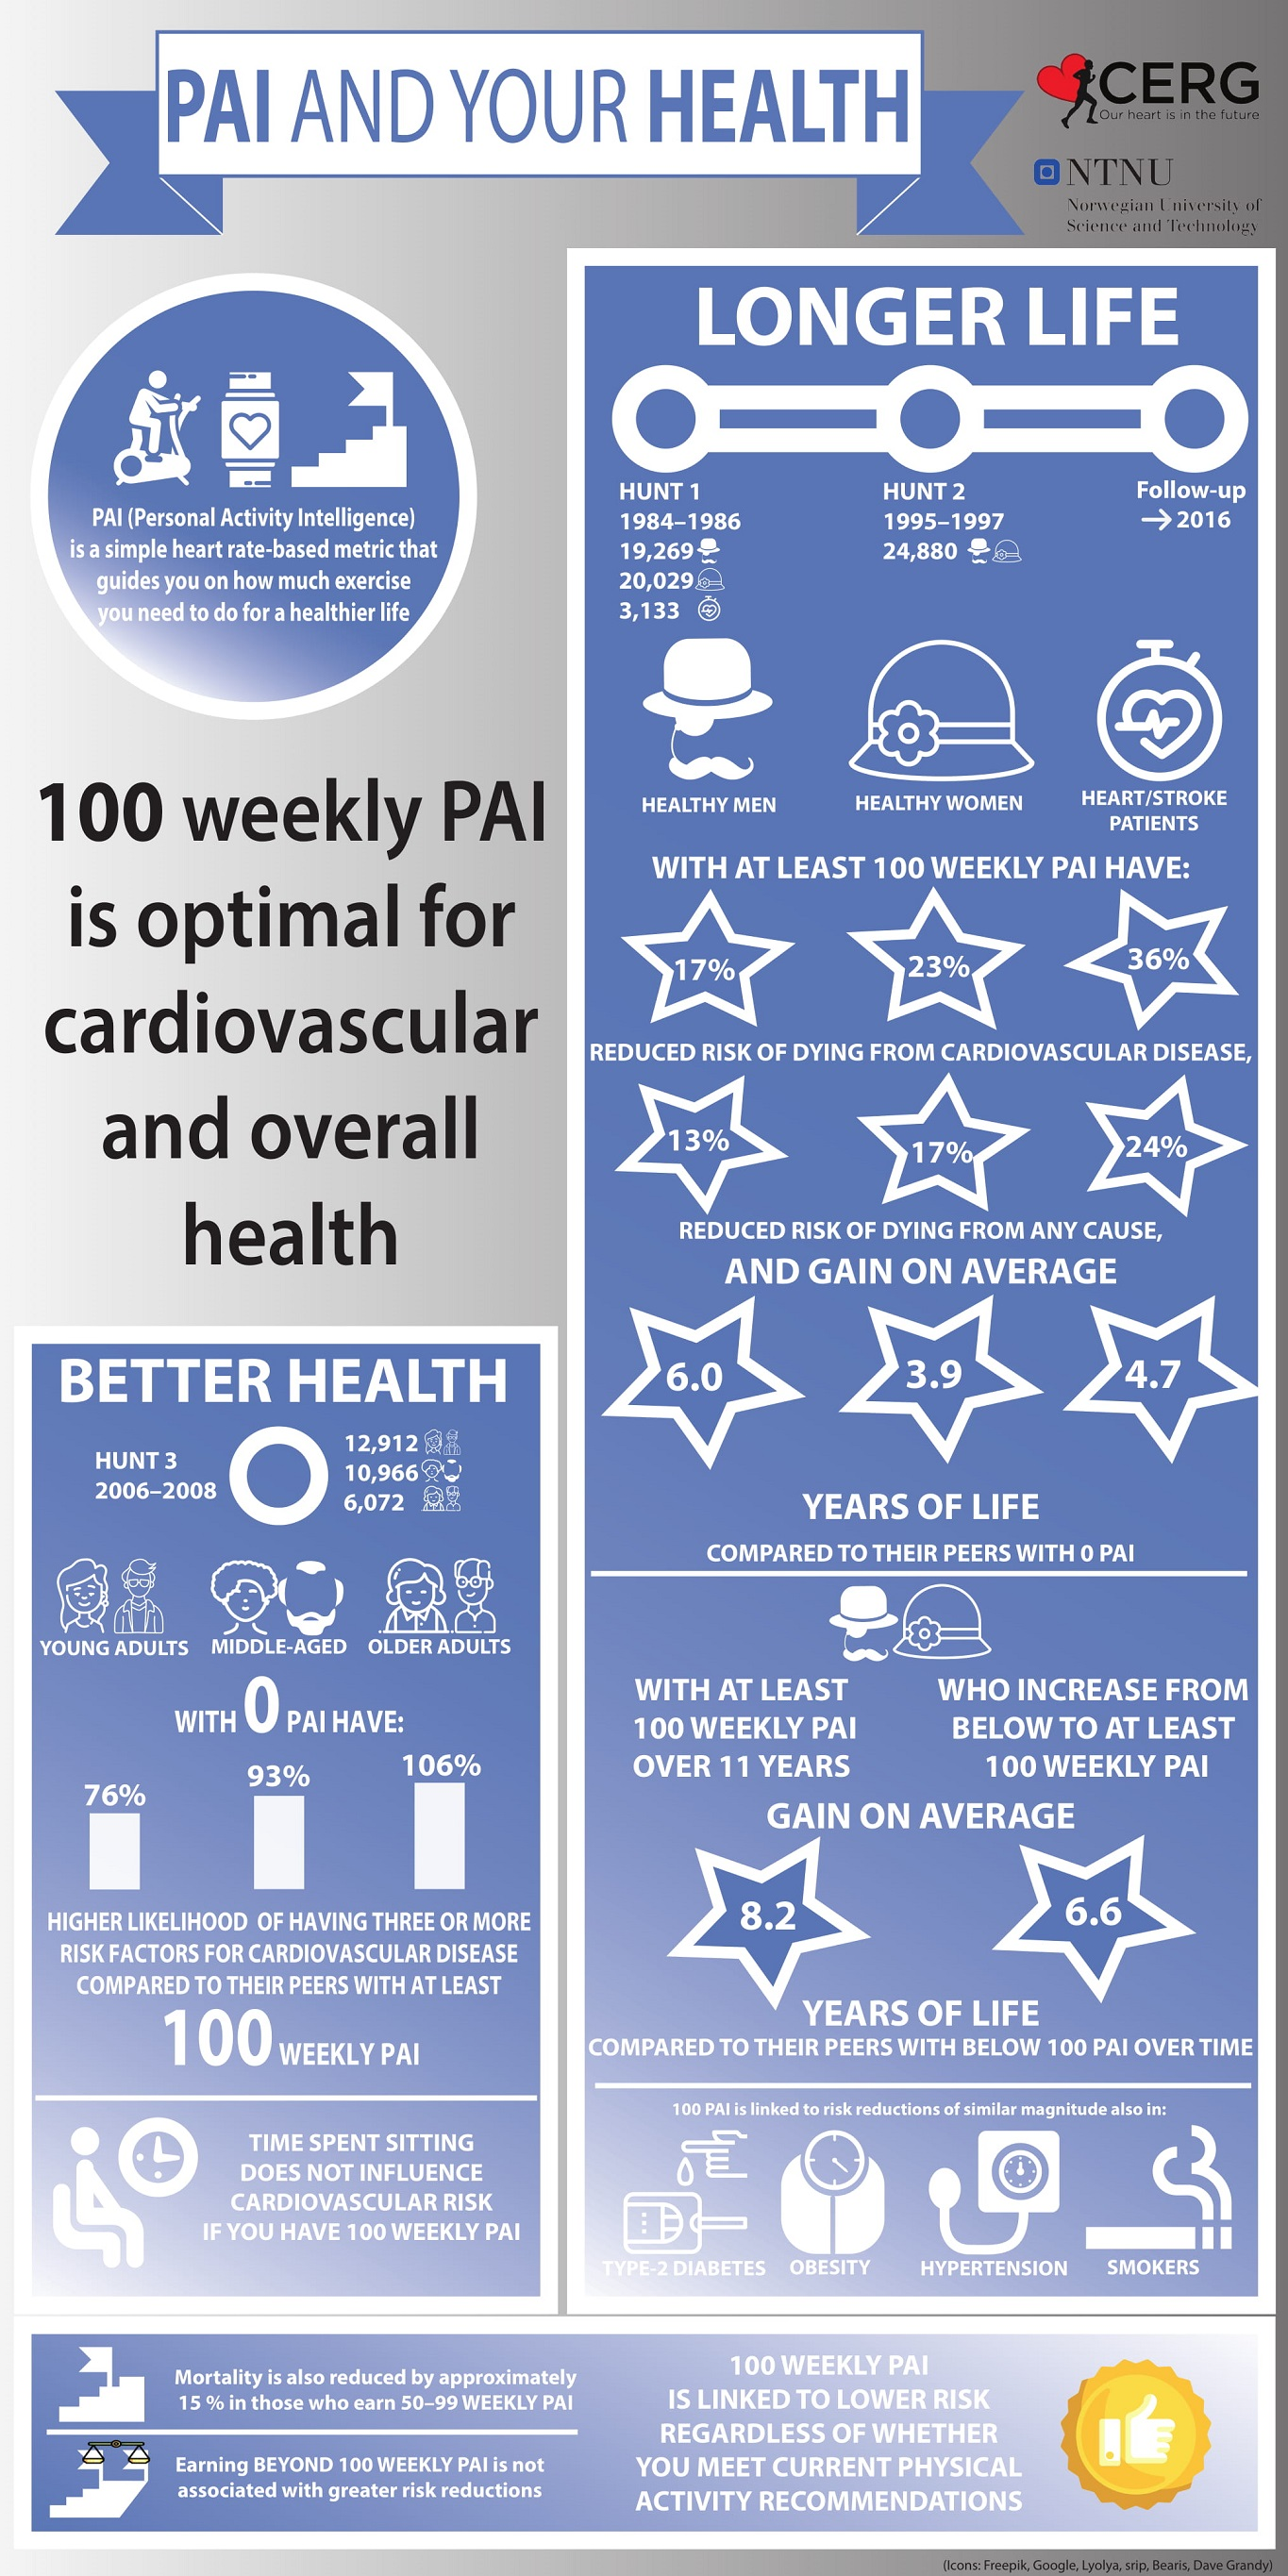 Infographic: PAI and your health